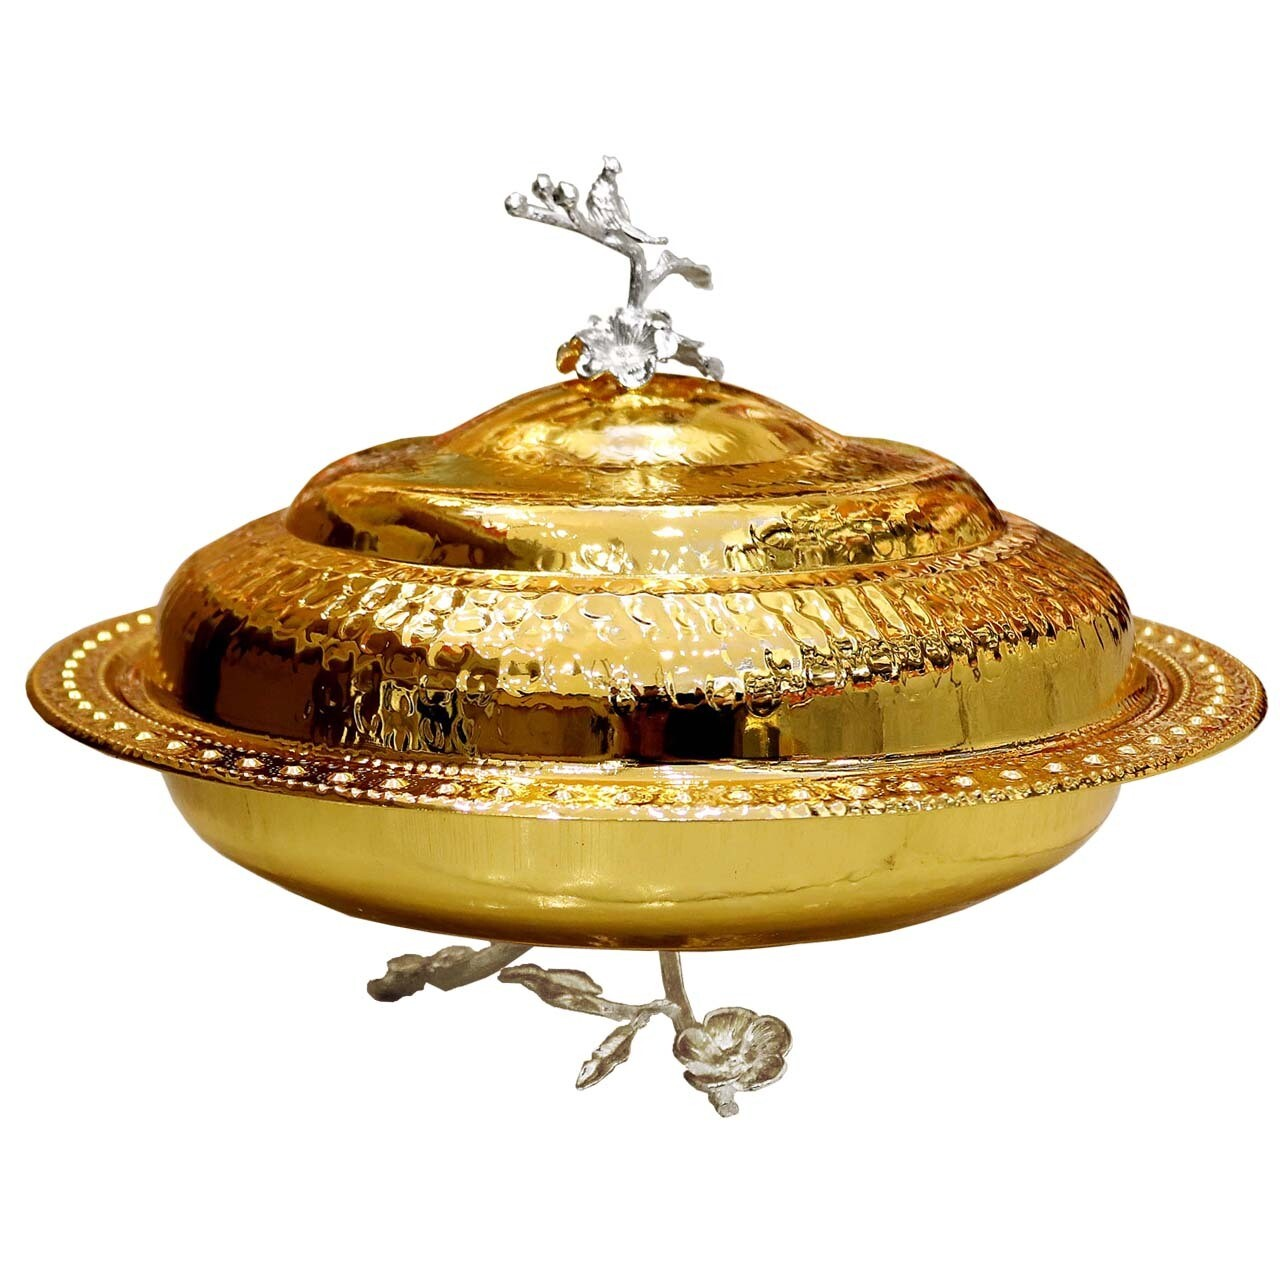 Stainless Steel Dessert Bowl With Lid Gold 39x39x22 centimeter